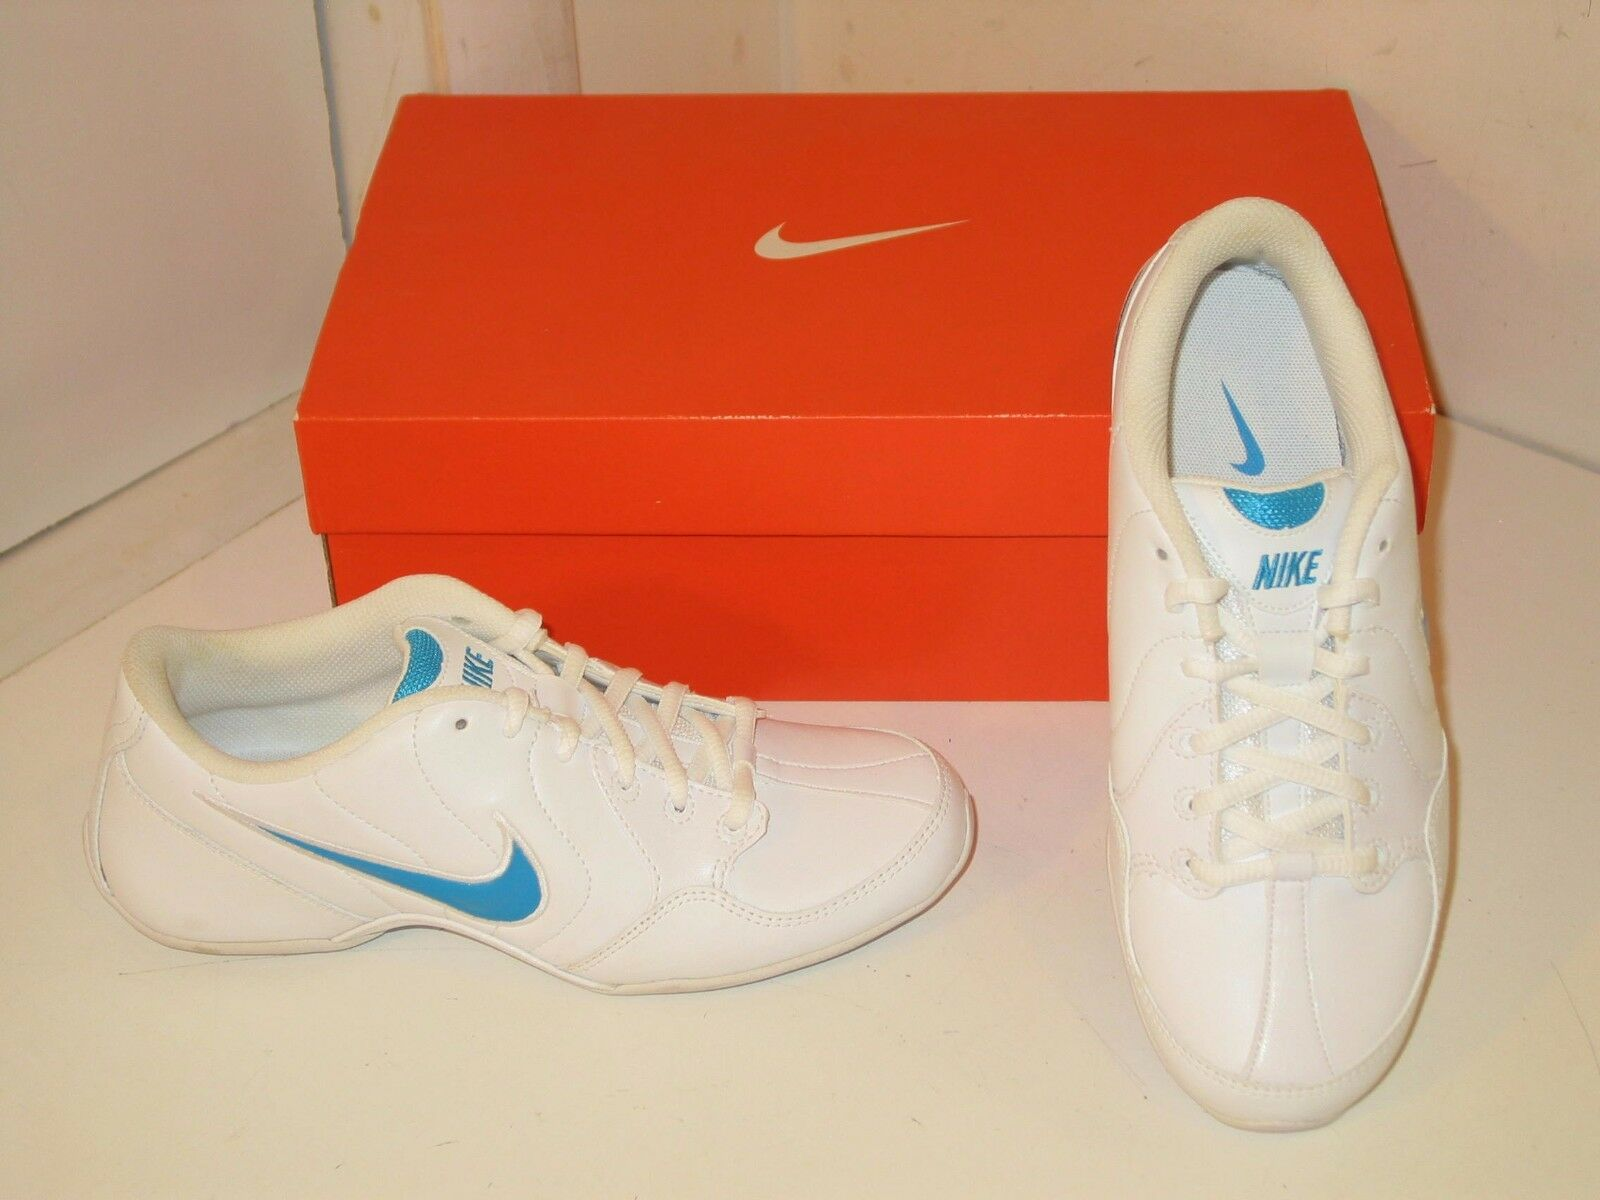 Nike Musique VI 6 Dance Gym Fitness Training Athletic Sneakers shoes Womens 5.5